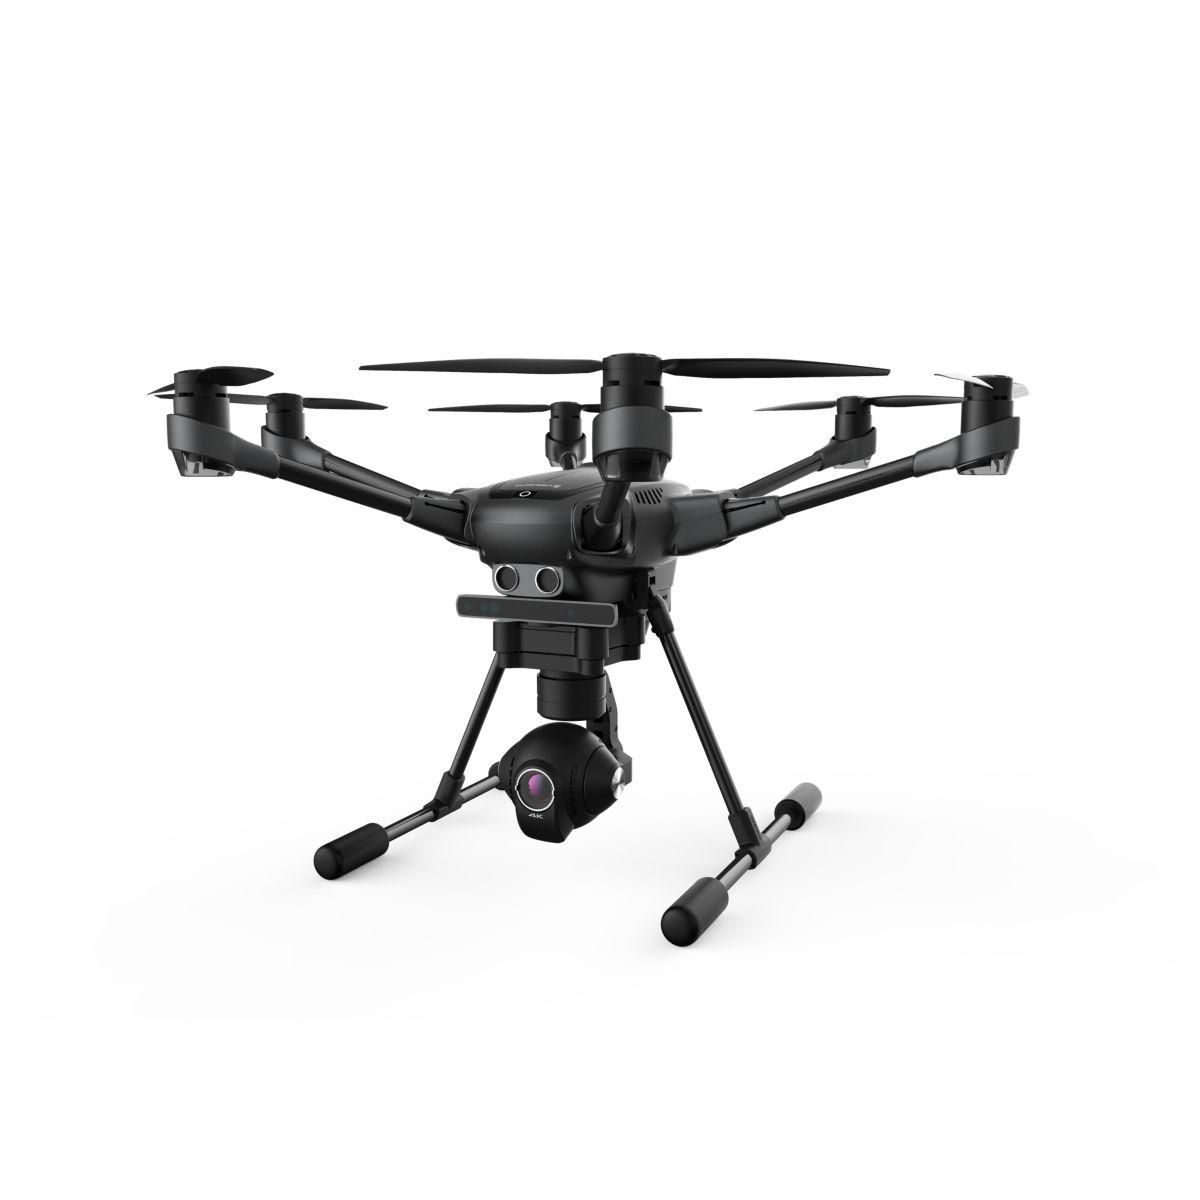 Drone yuneec typhoon h professional (photo)